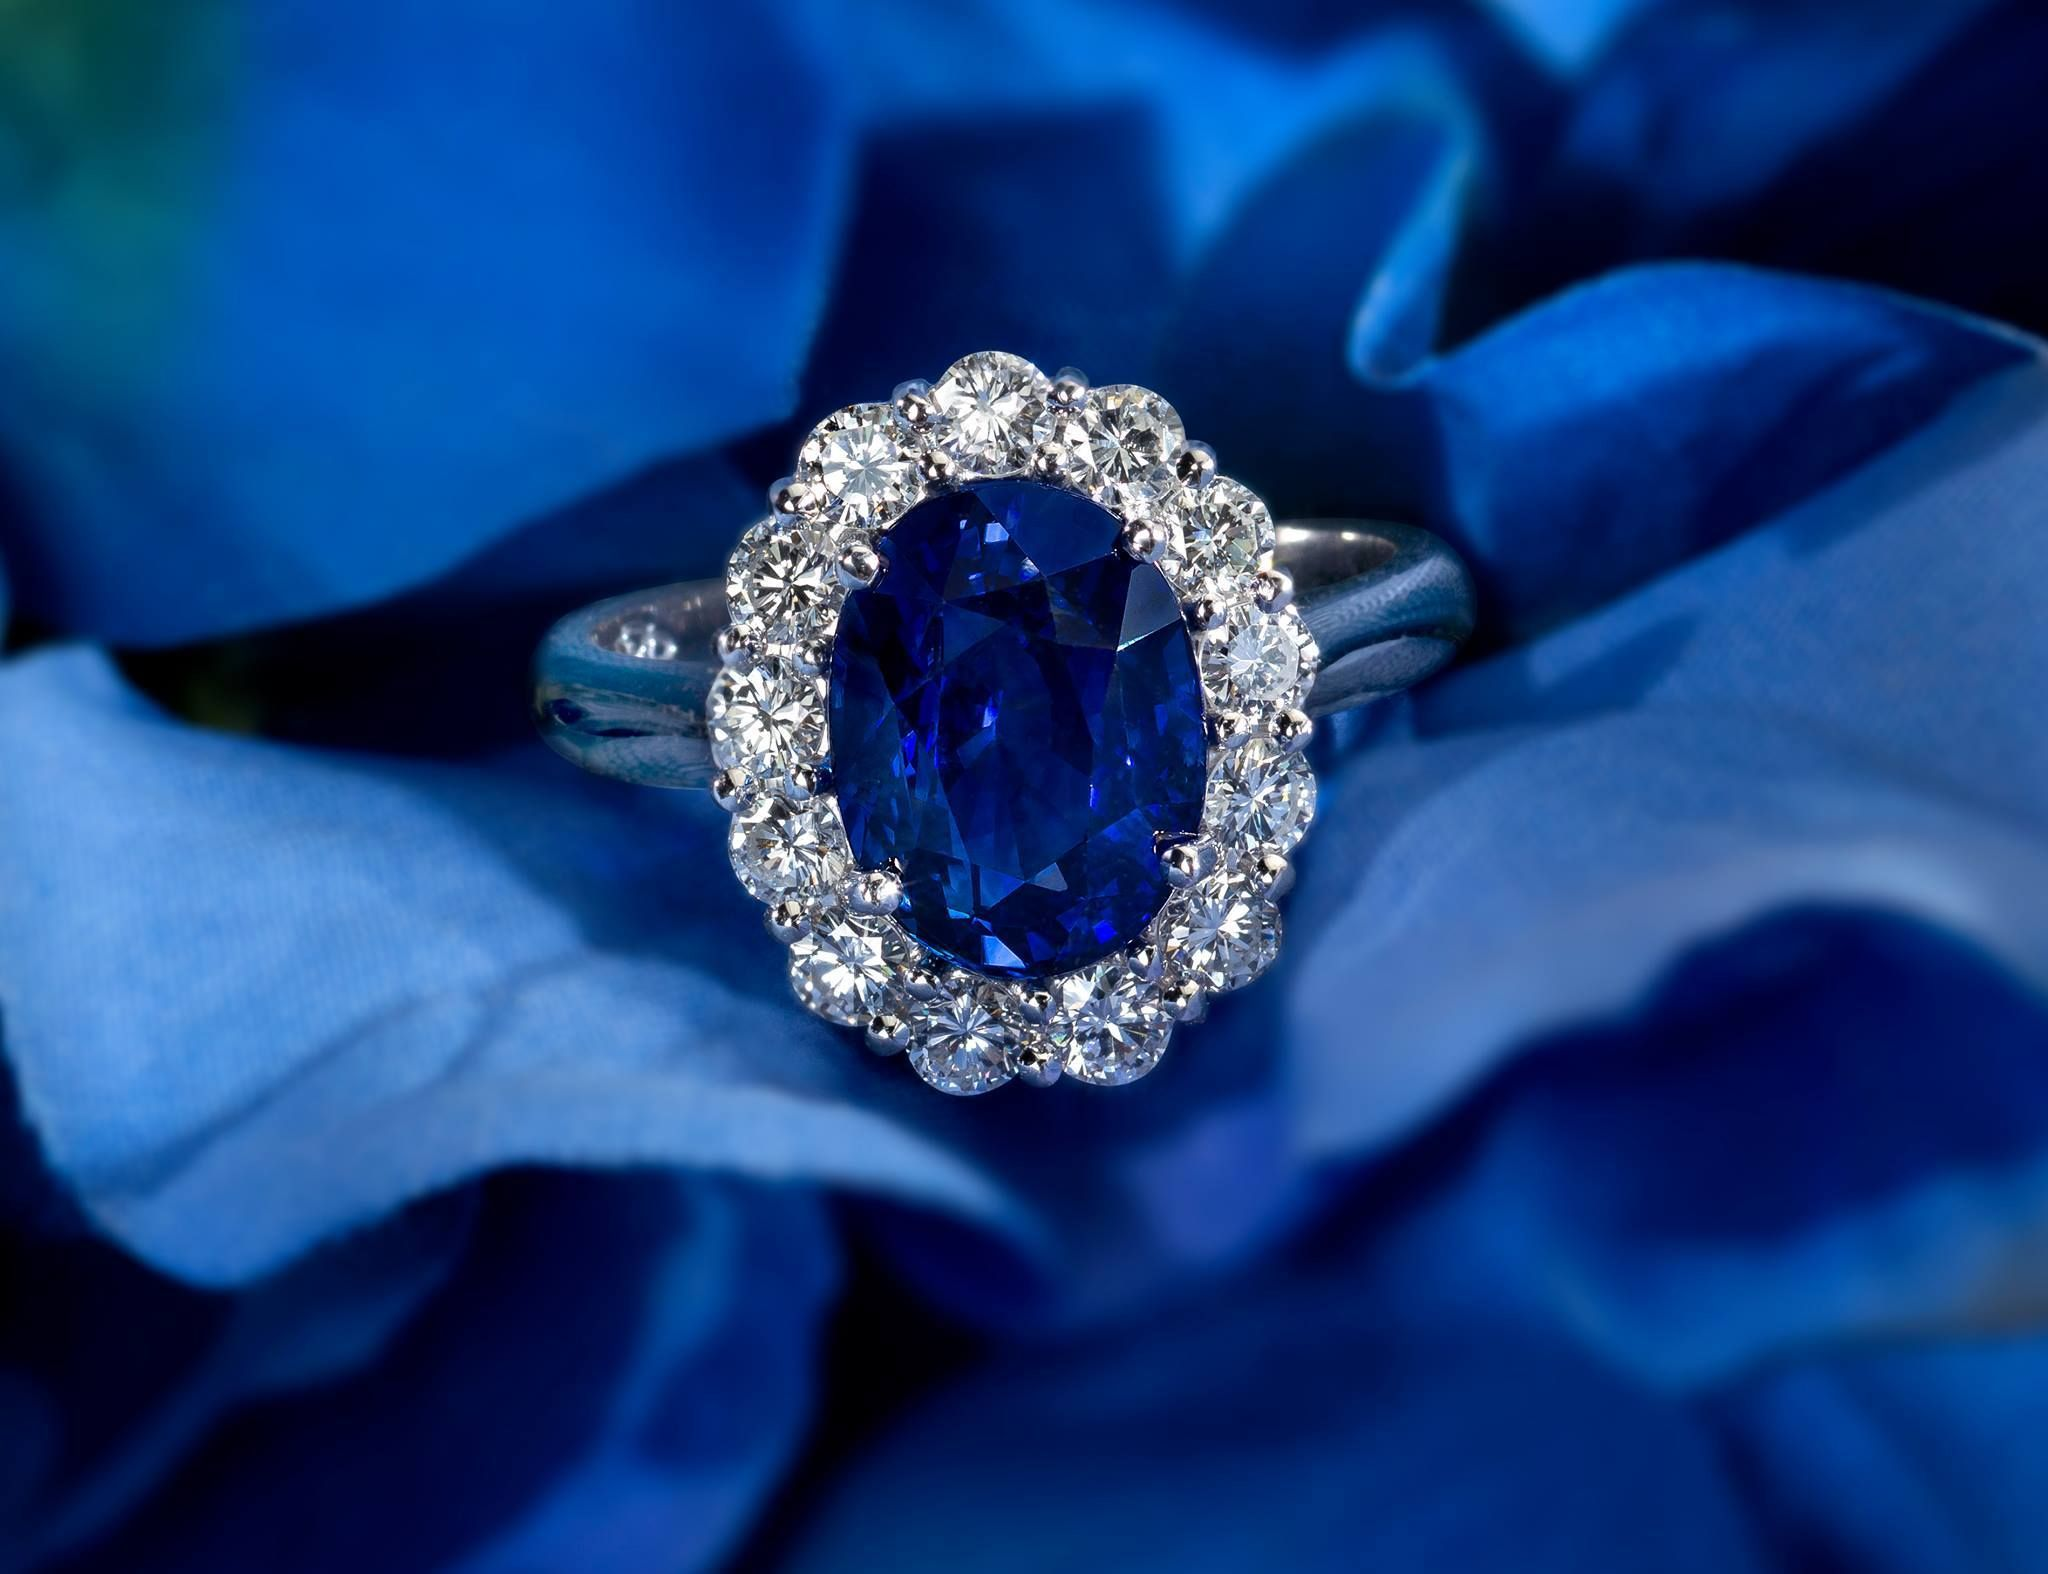 Fit for royalty. Wouldn't this sapphire ring make the